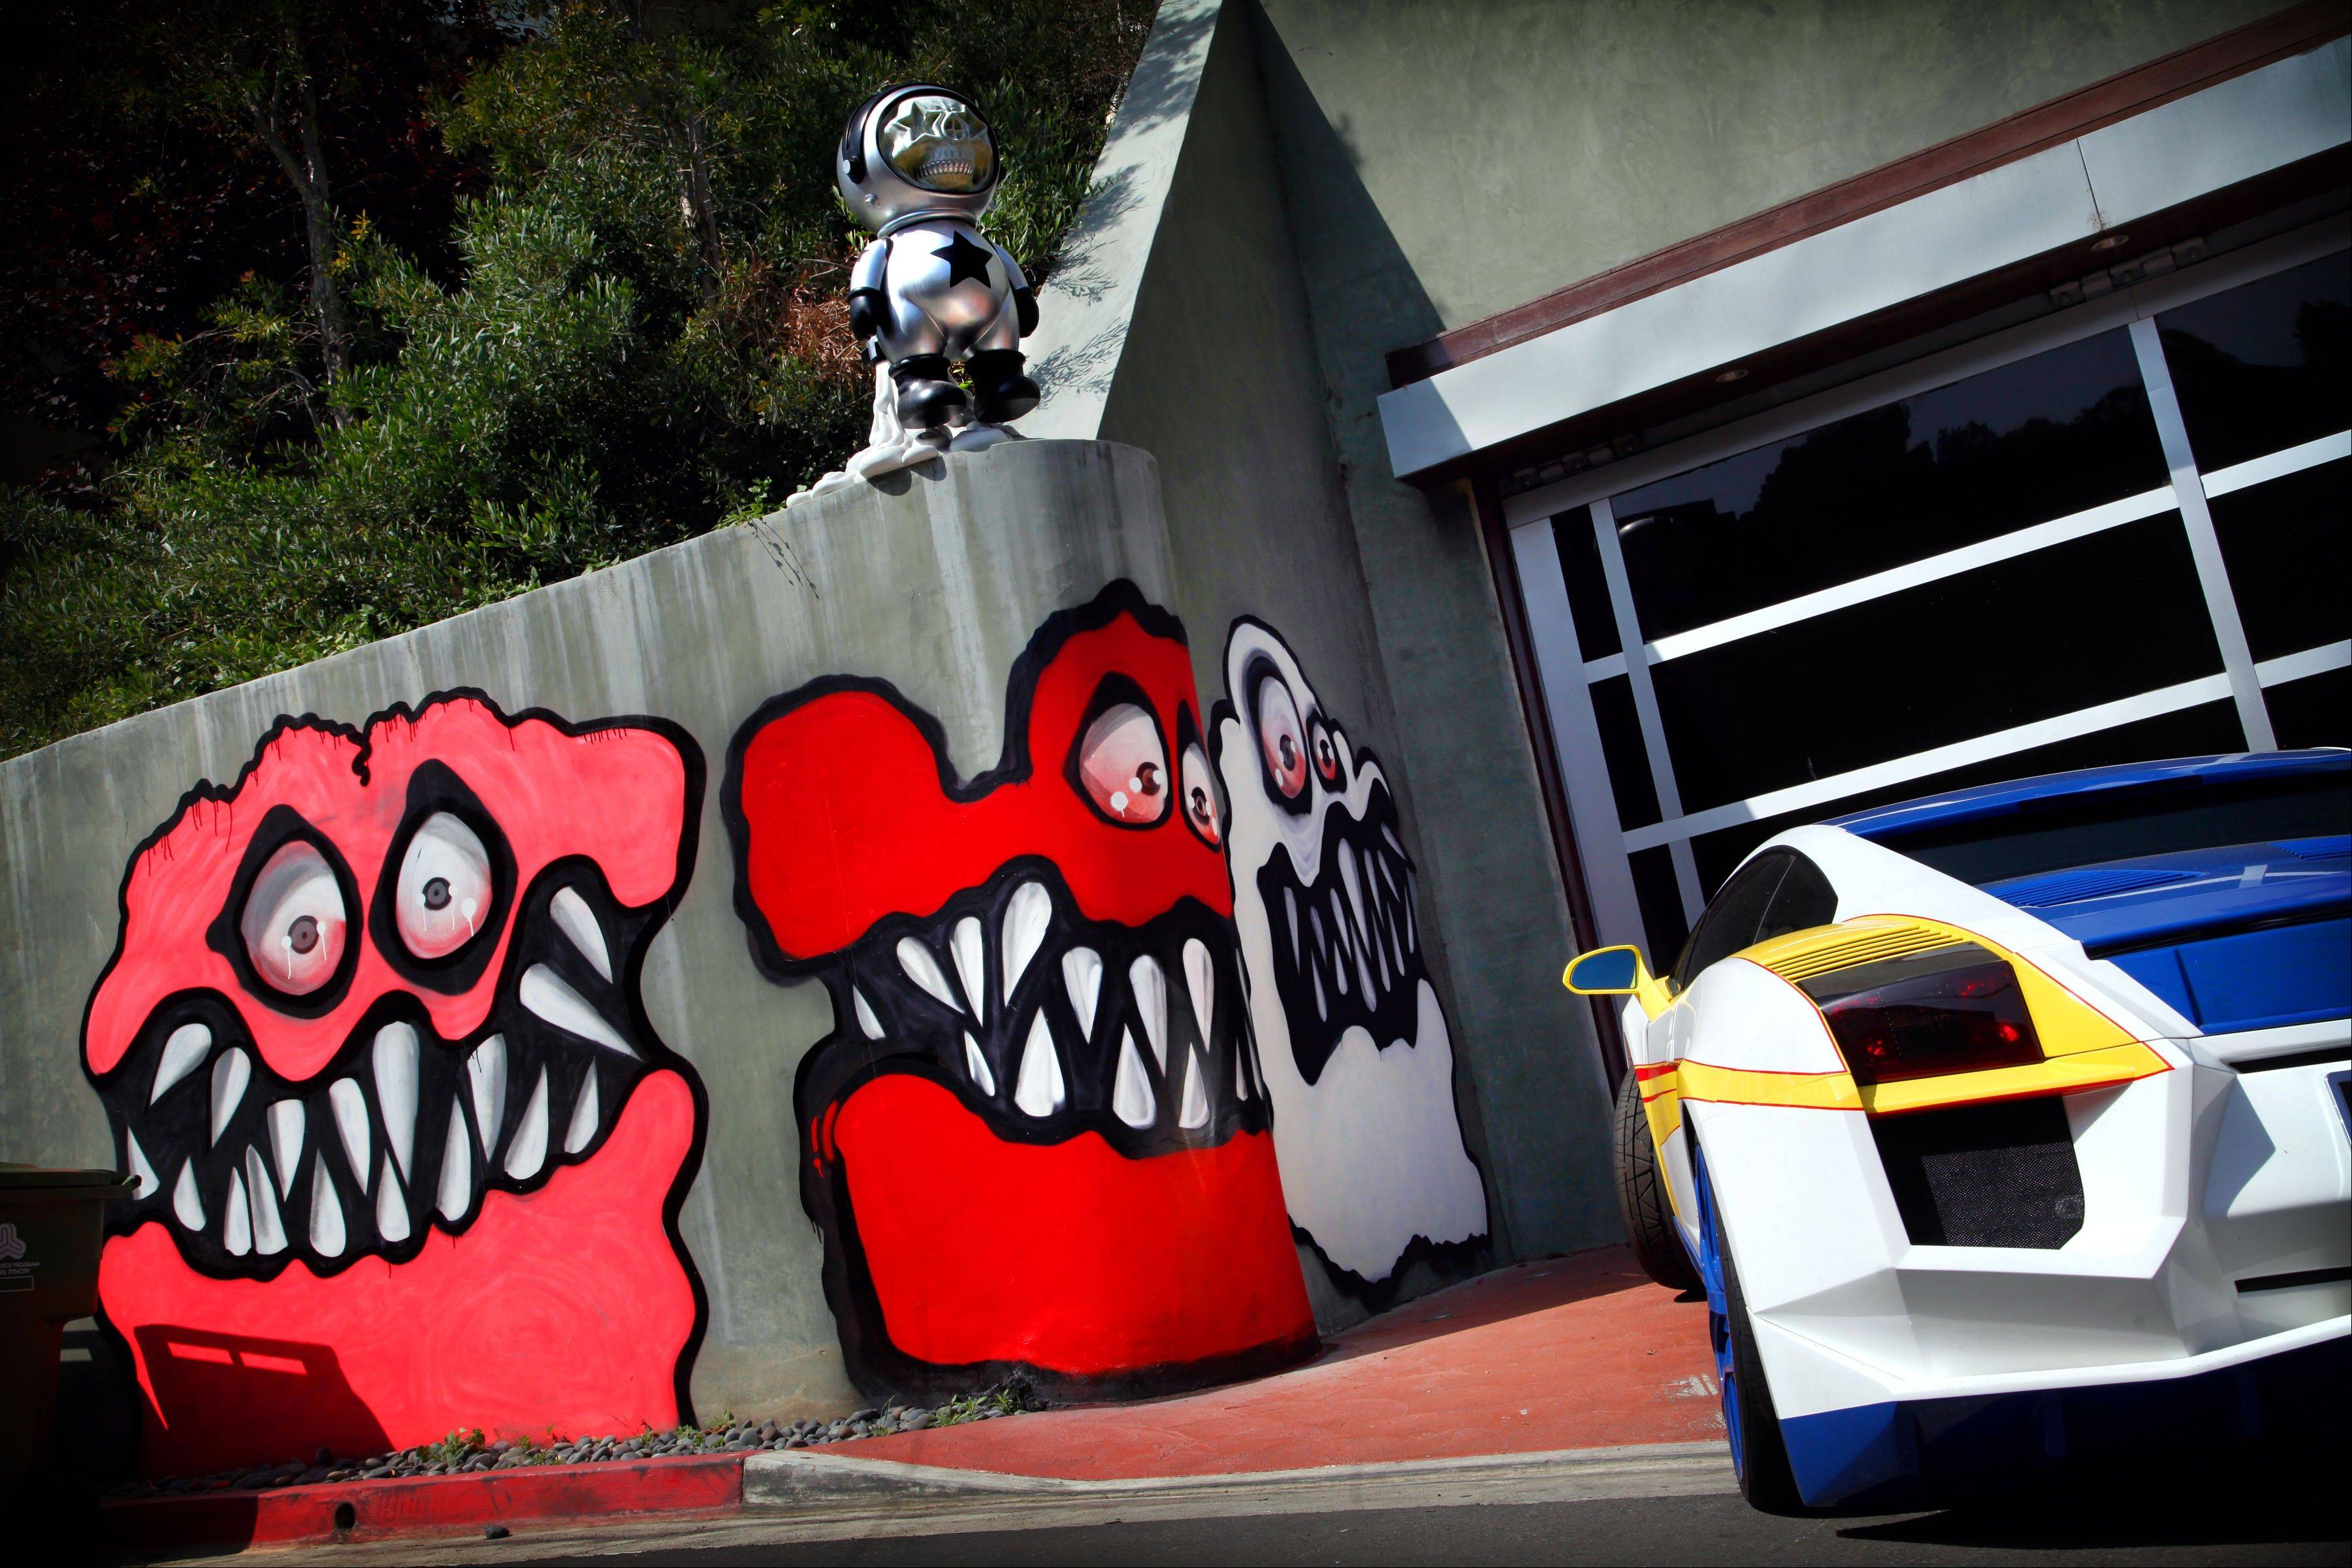 Neighbors are angry at Chris Brown�s street art painted outside his home and local residents are calling for fines to be brought against the pop star and demanding Brown remove the street art.